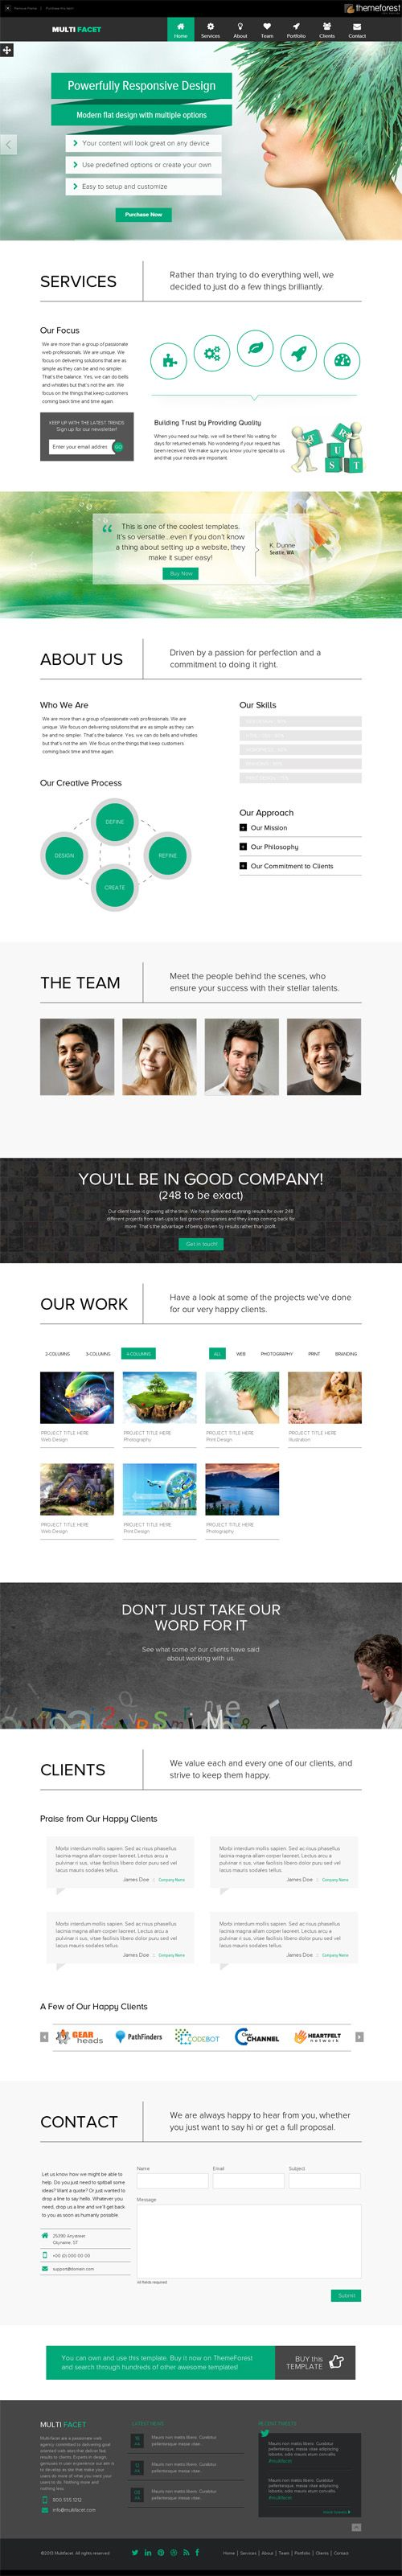 MultiFacet - Responsive One Page Template #flatdesign #responsivedesign #onepagetemplates #html5templates #websitetemplates